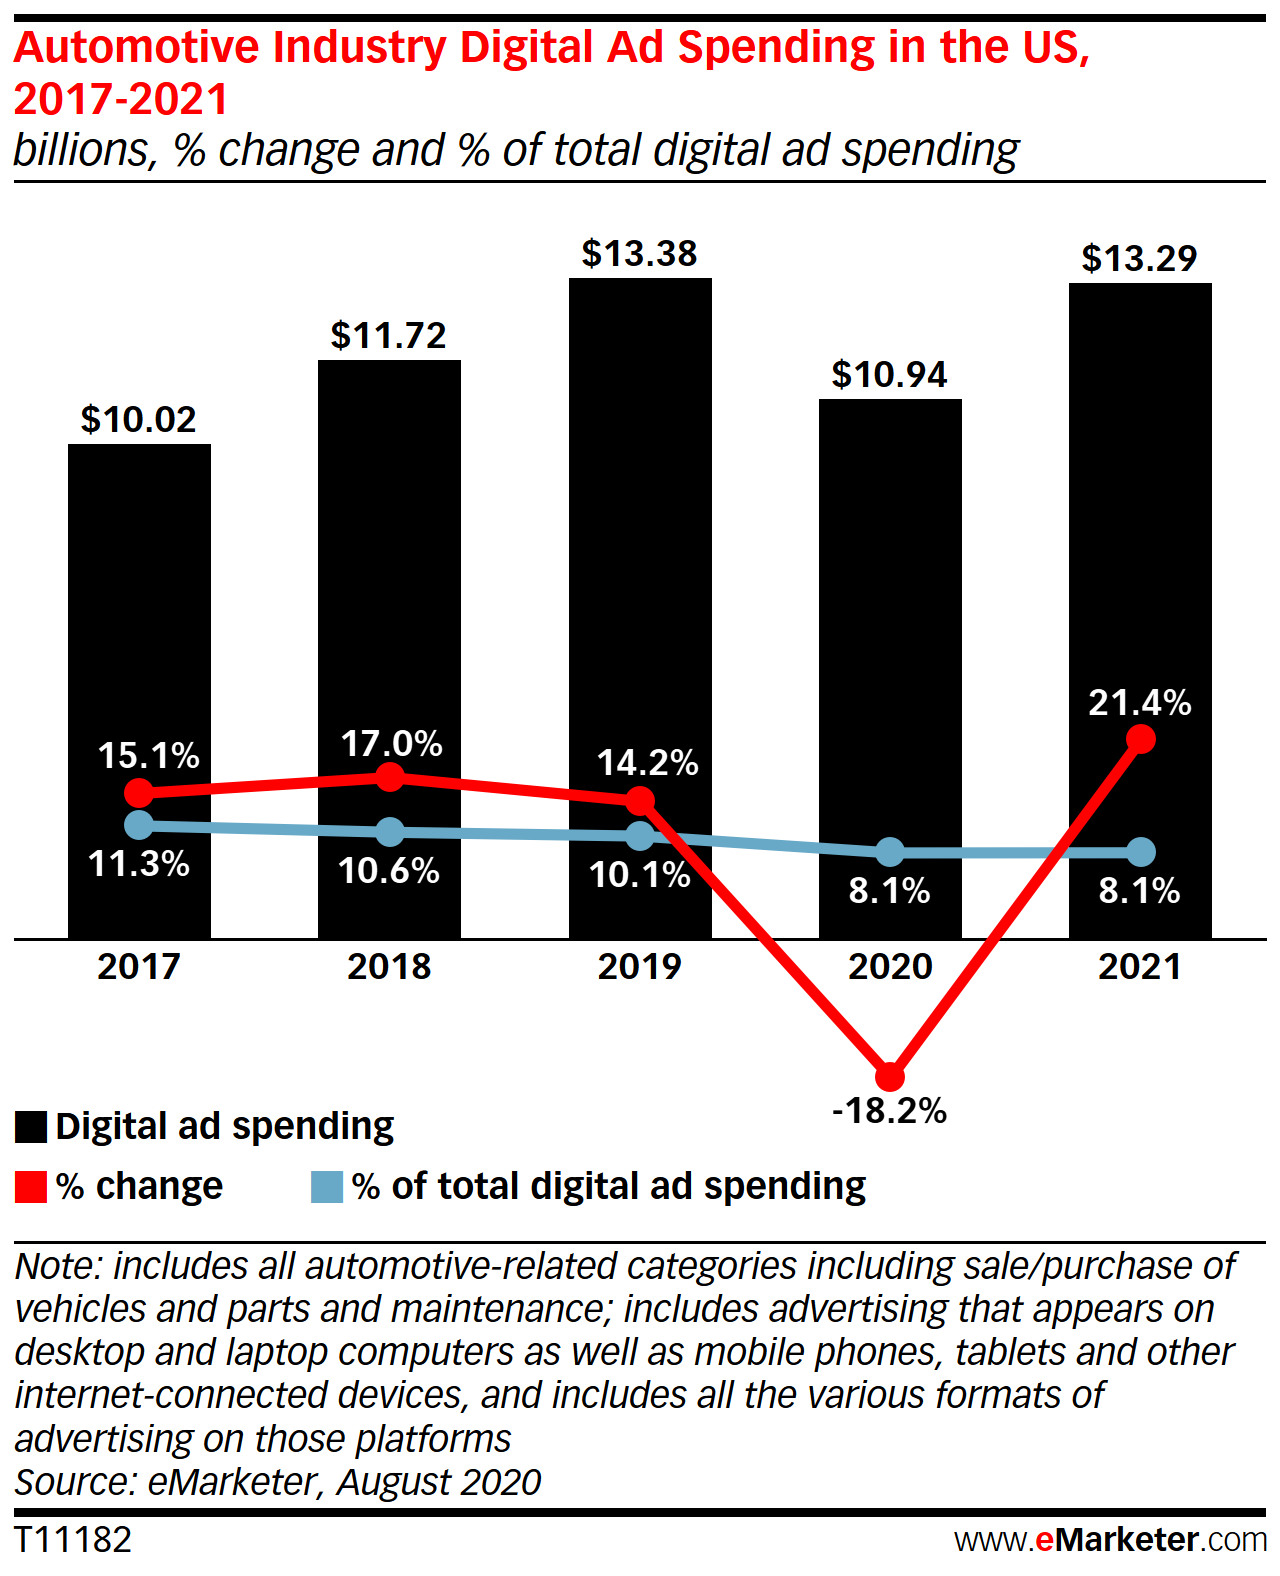 Automotive Industry Digital Ad Spending in the US, 2017-2021 (billions, % change, and % of total digital ad spending)